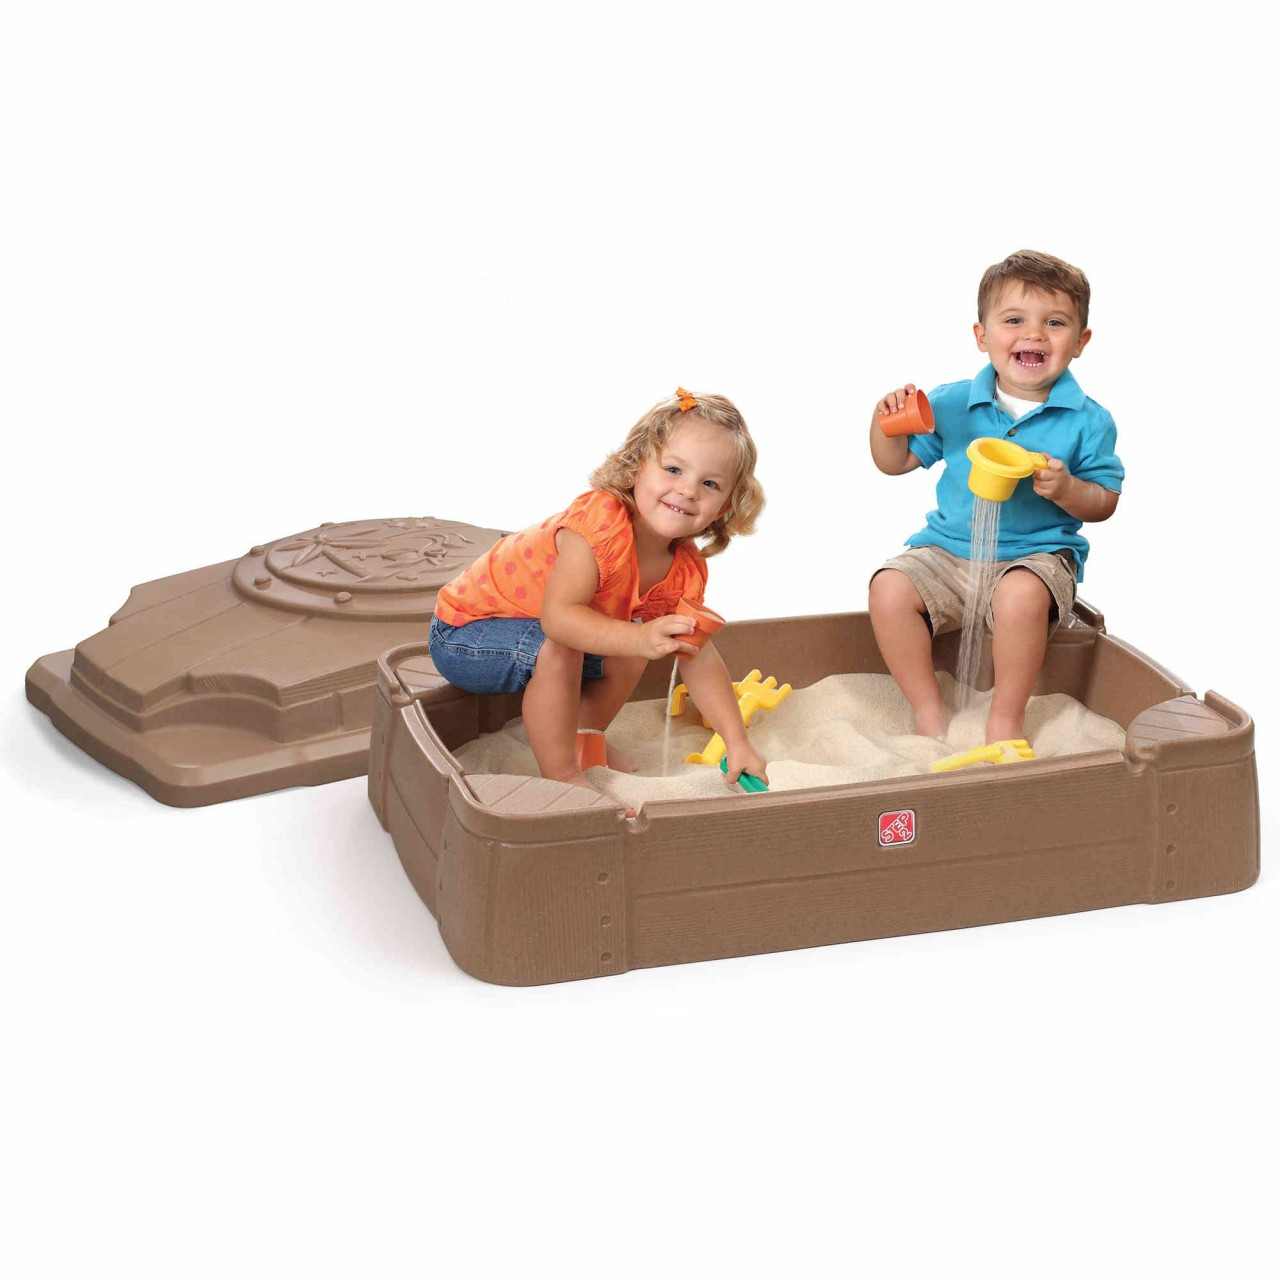 Sandkasten Play & Store Sandbox